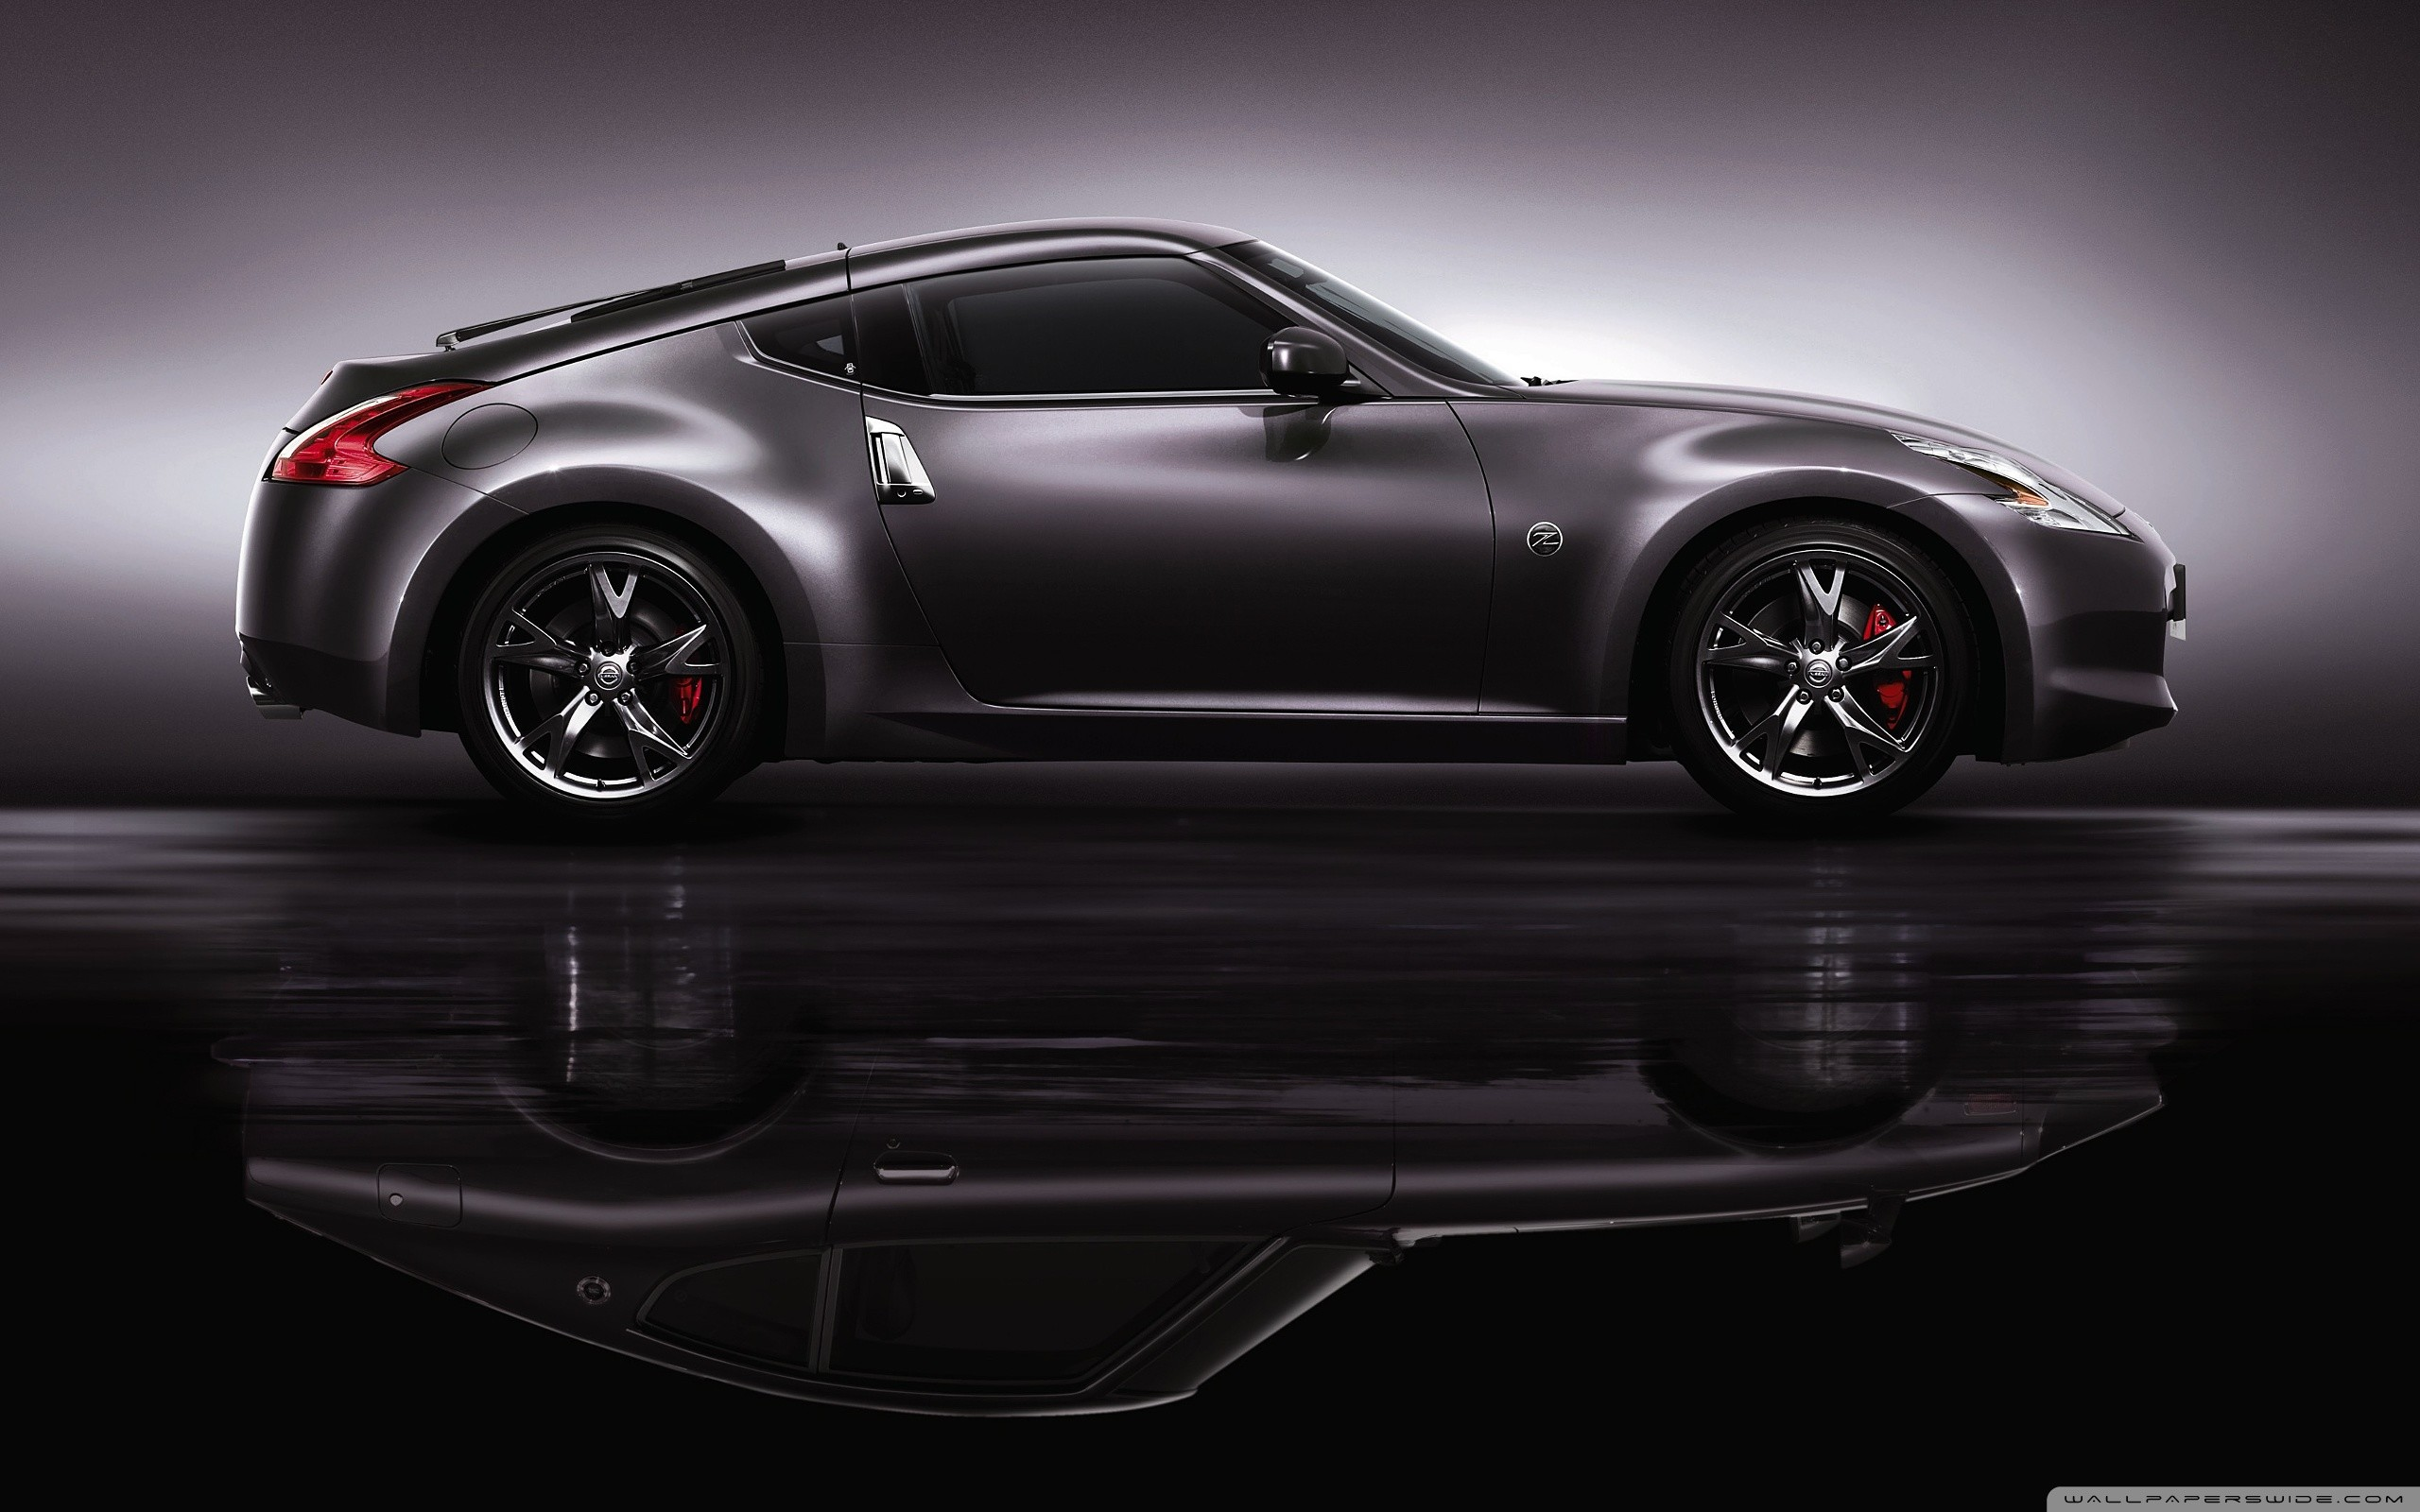 67 best Z images on Pinterest | Nissan z, Cars motorcycles and Image search